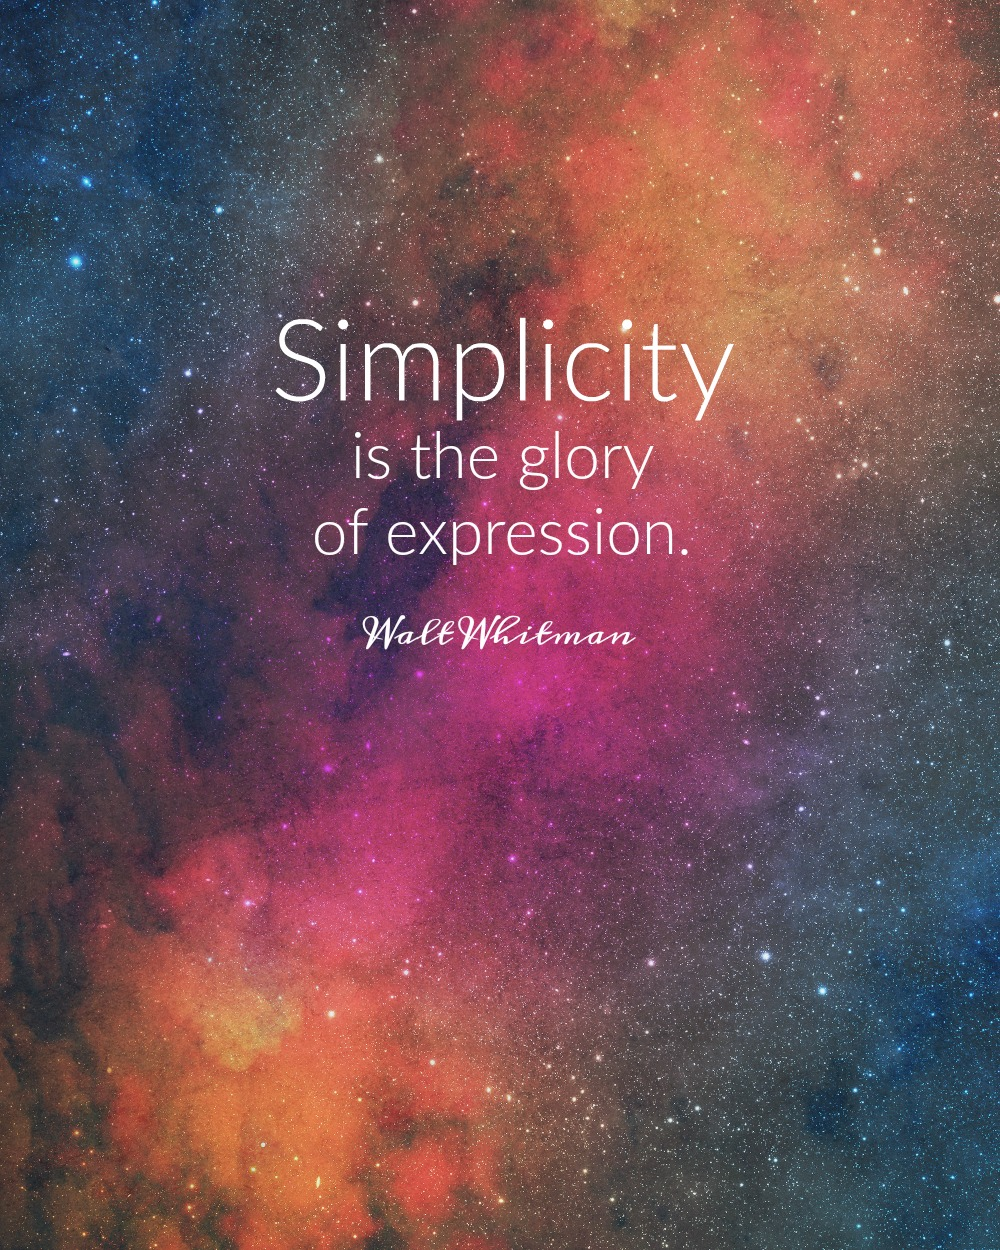 Simplicity is the glory of expression. Walt Whitman. Circle of Daydreams. www.circleofdaydreams.com